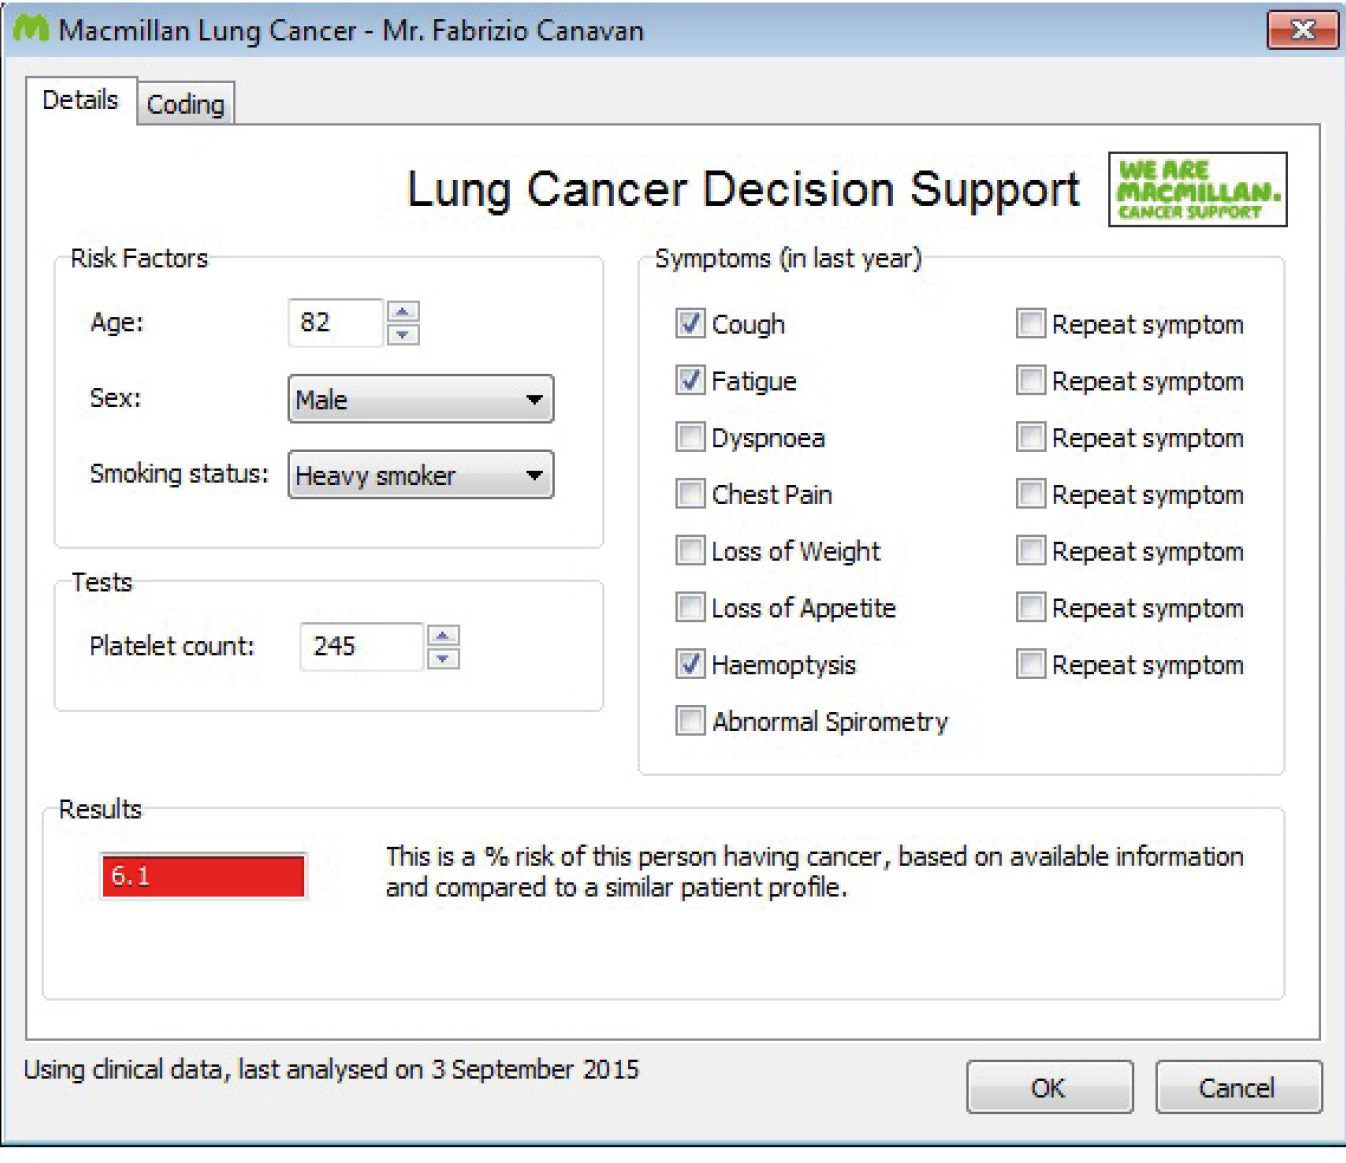 Macmillan's cancer decision support tool symptom checker template for lung cancer (dummy patient data displayed)